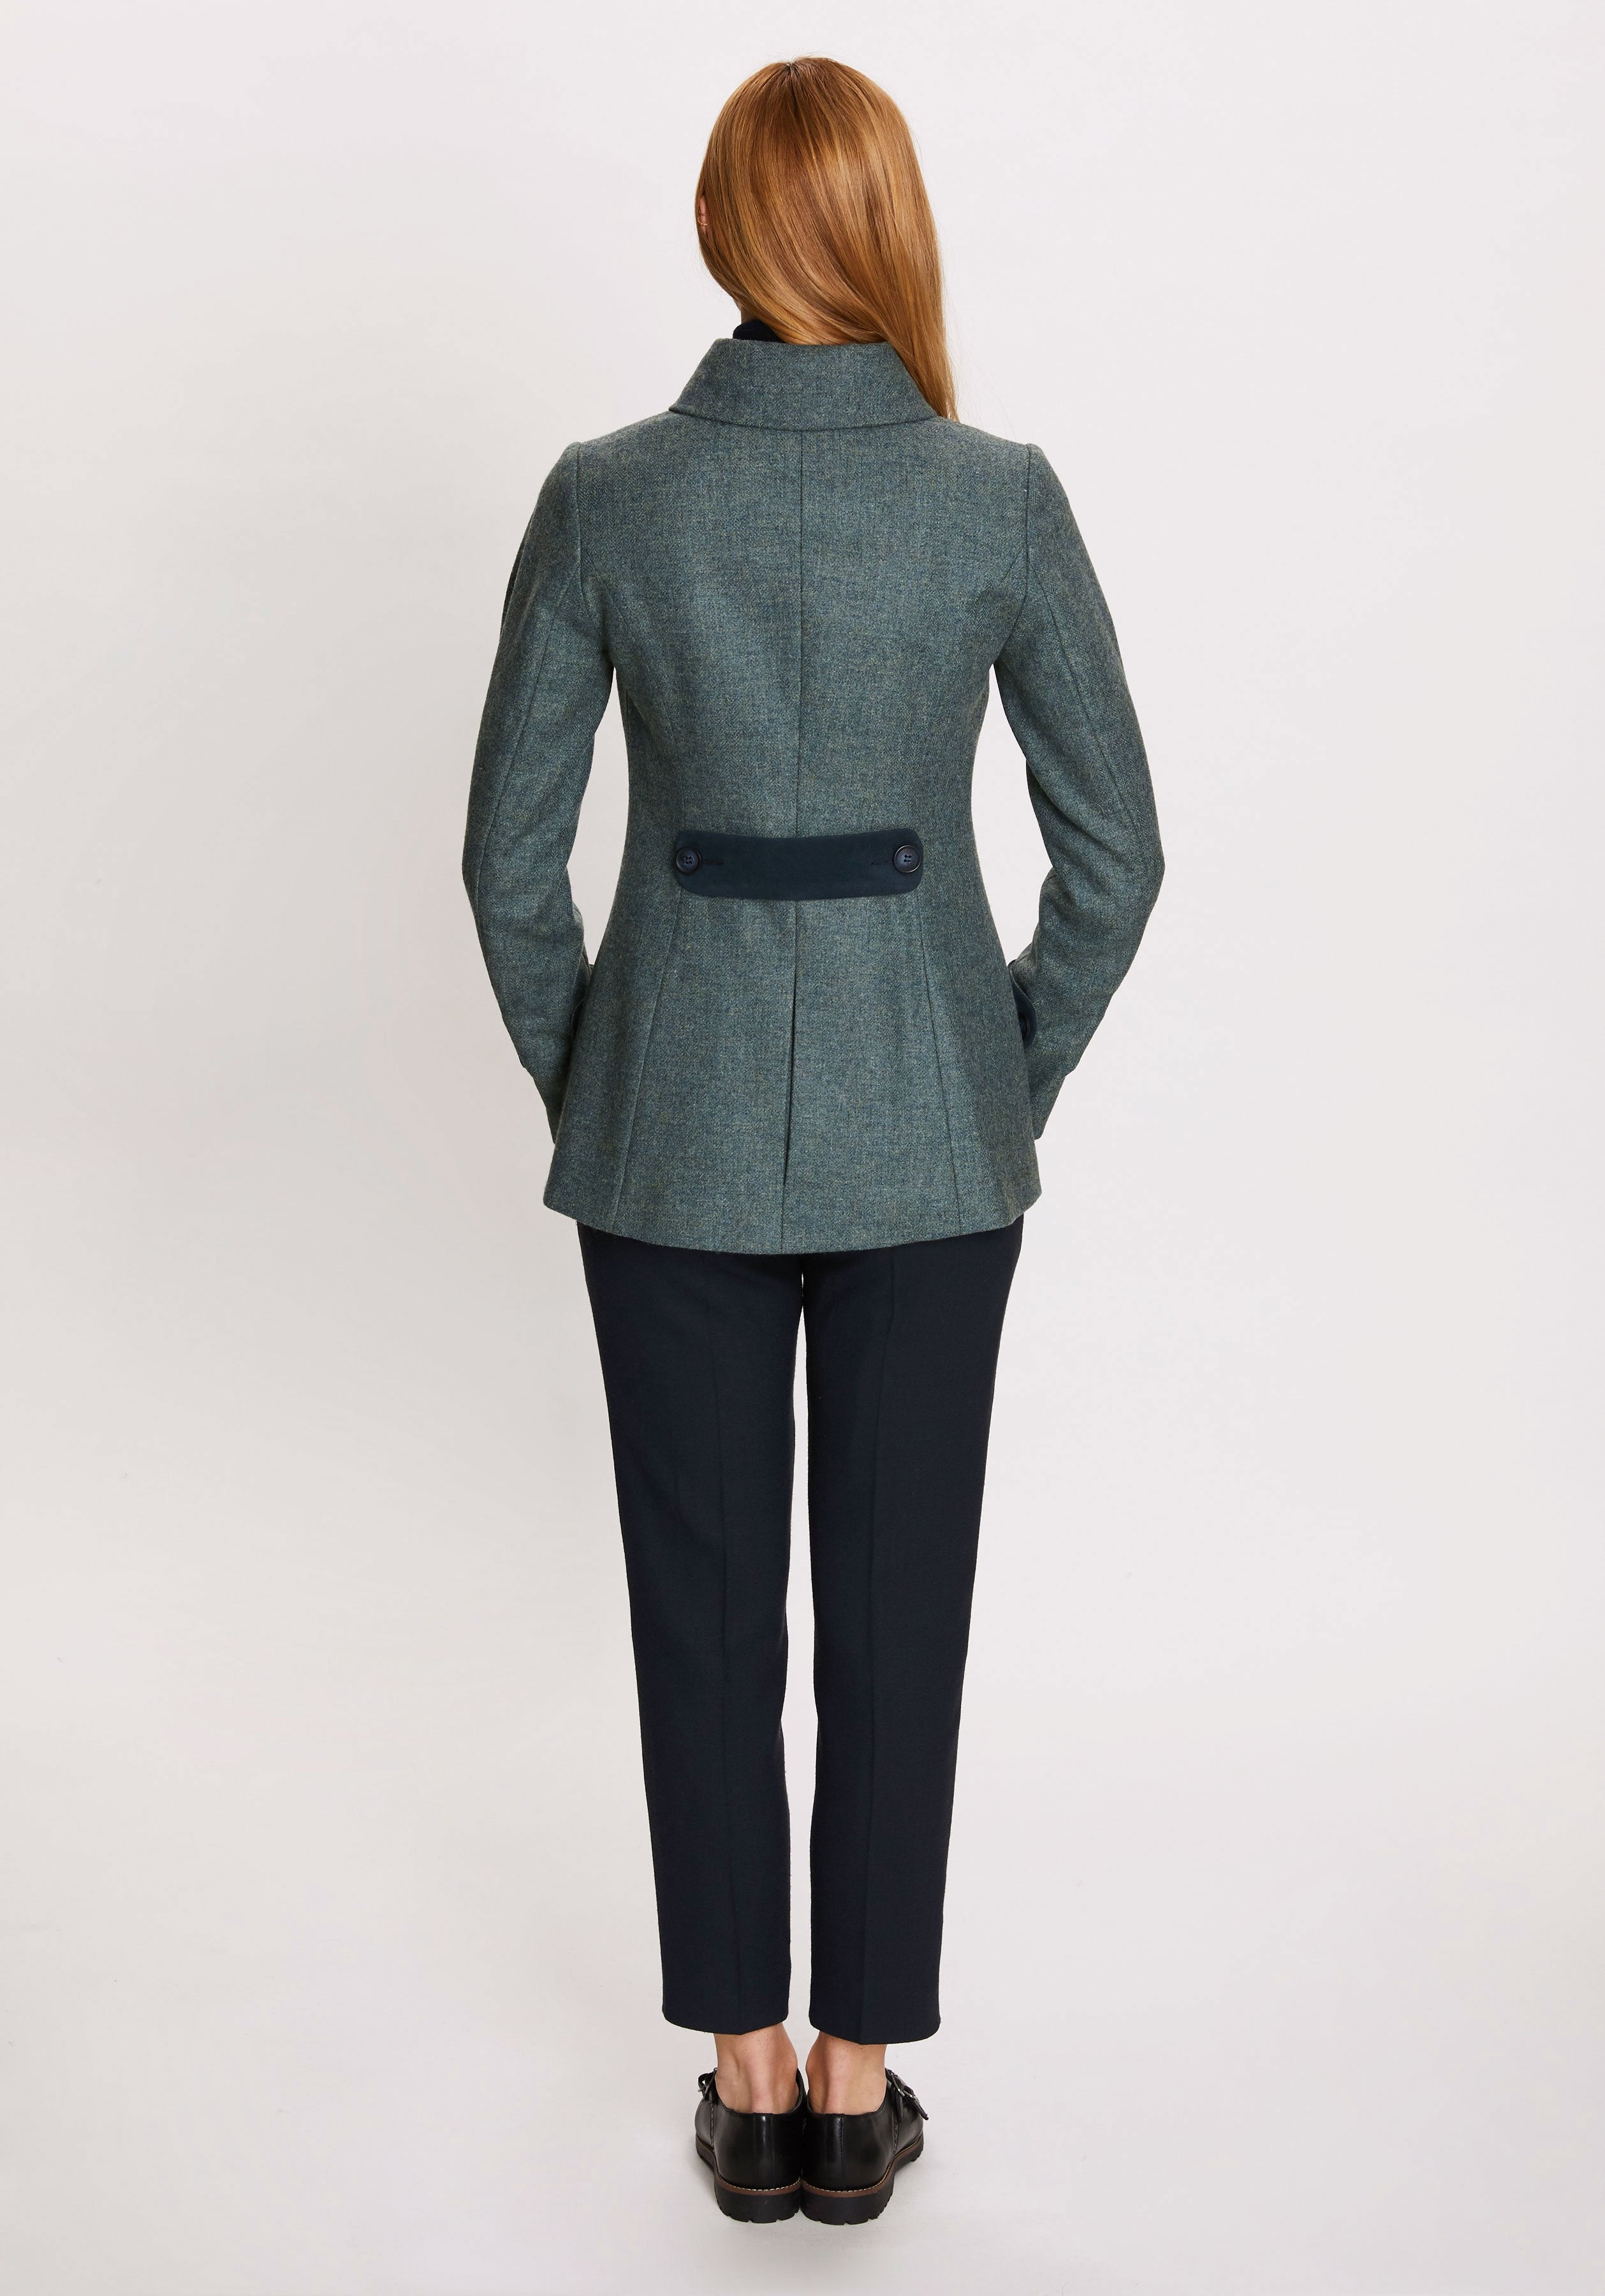 Hendre Jacket in Teal